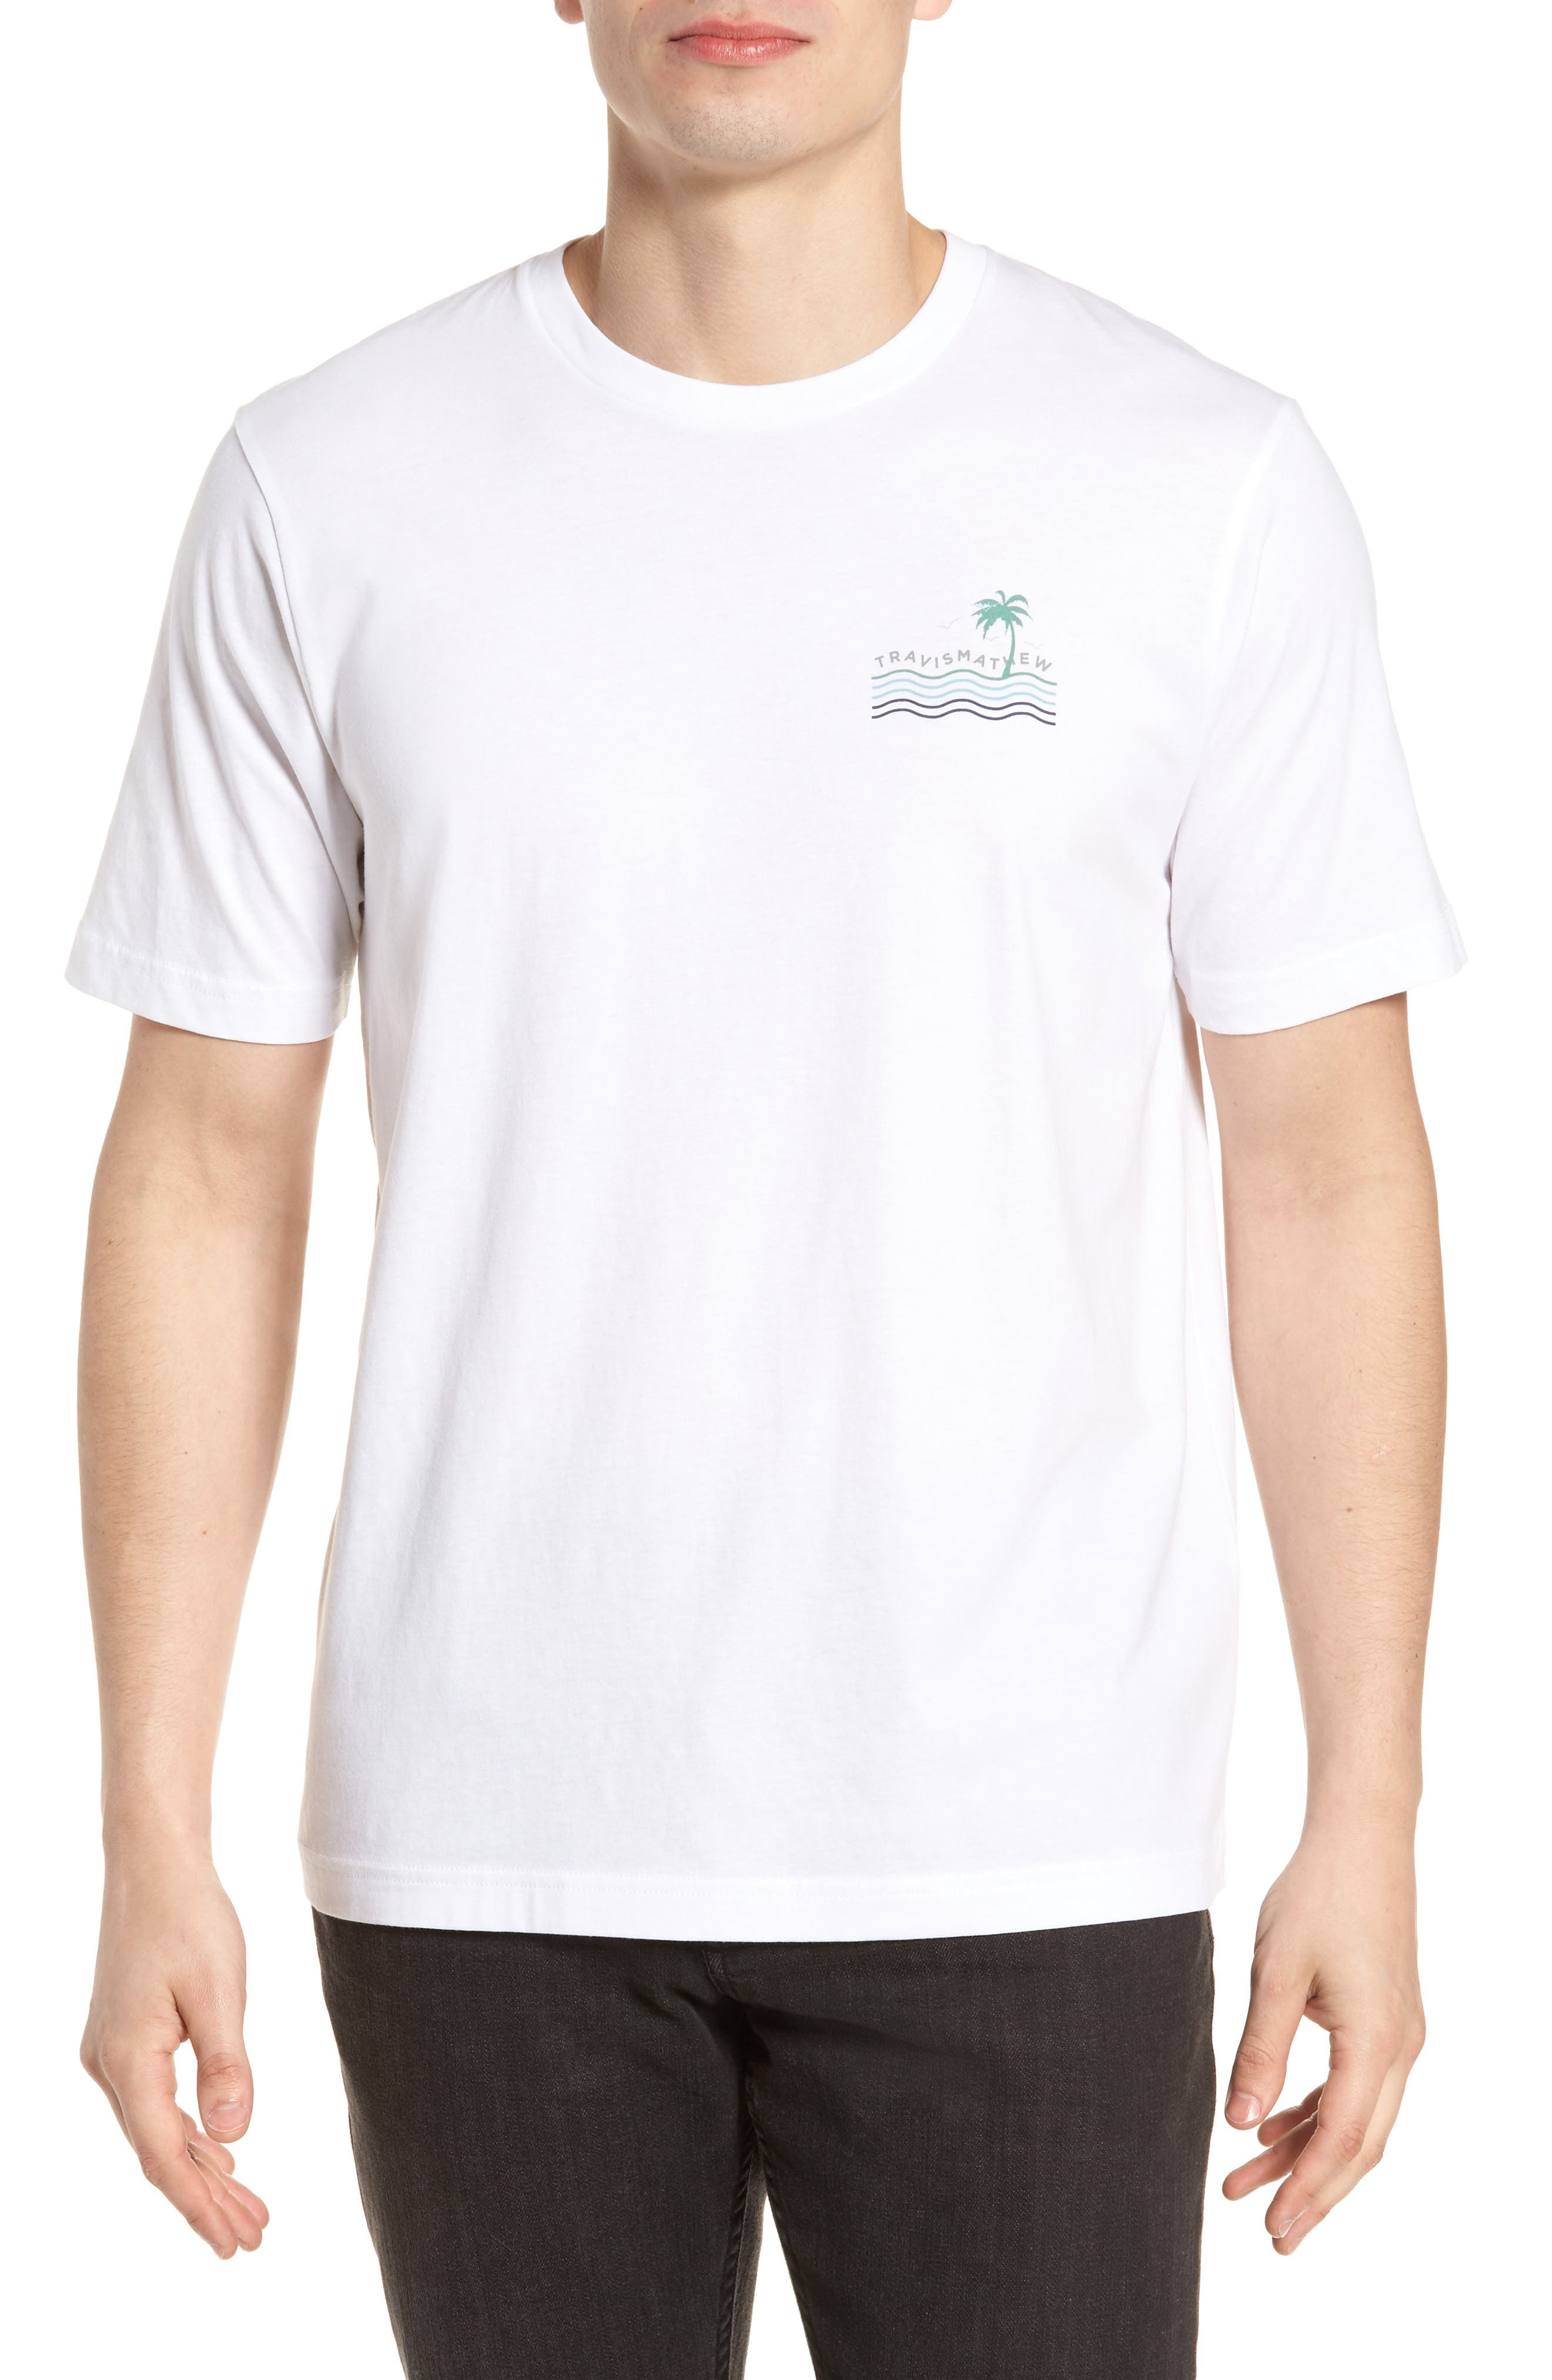 Double Take Graphic T-Shirt,                         Main,                         color, White